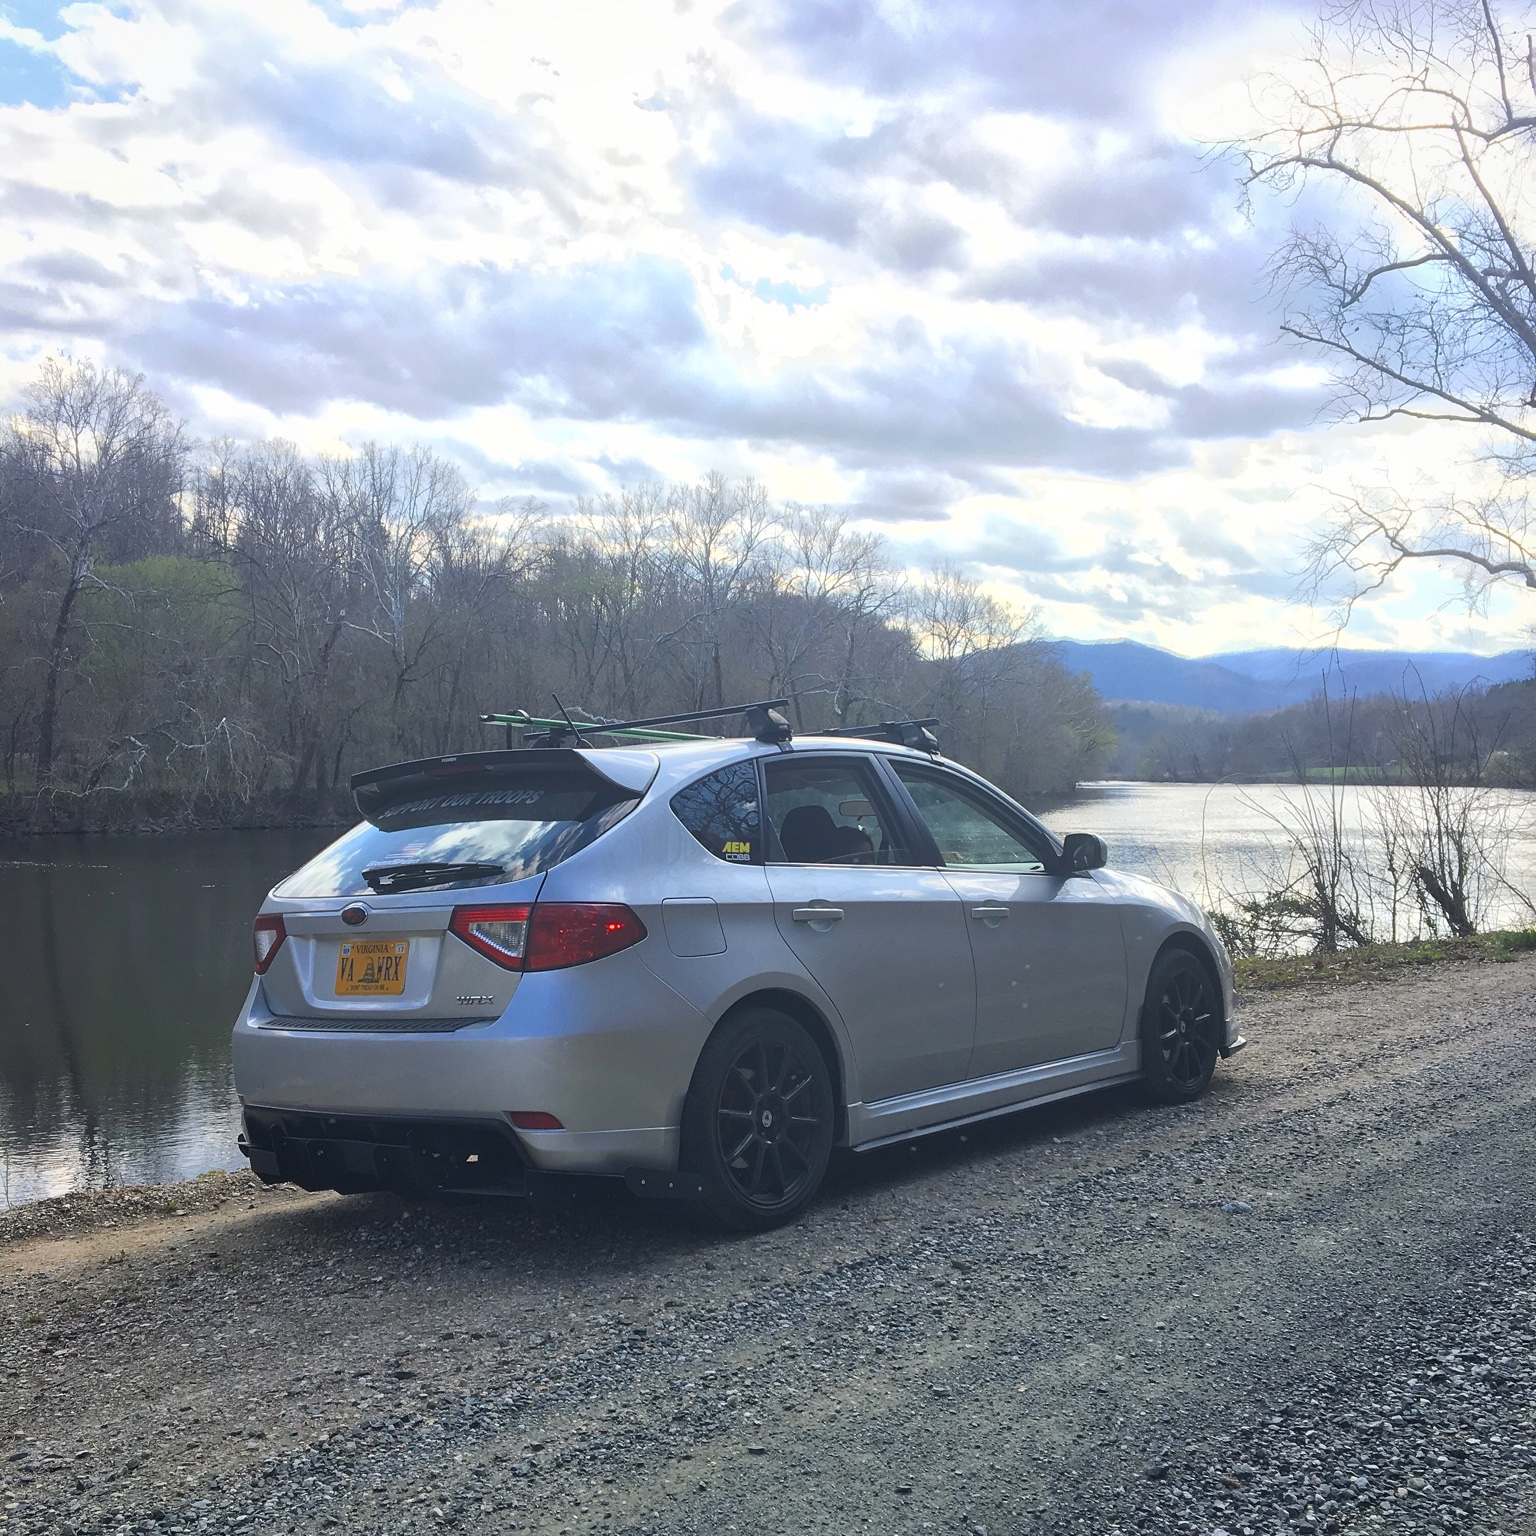 08 10 Narrow Body WRX Hatch NASIOC